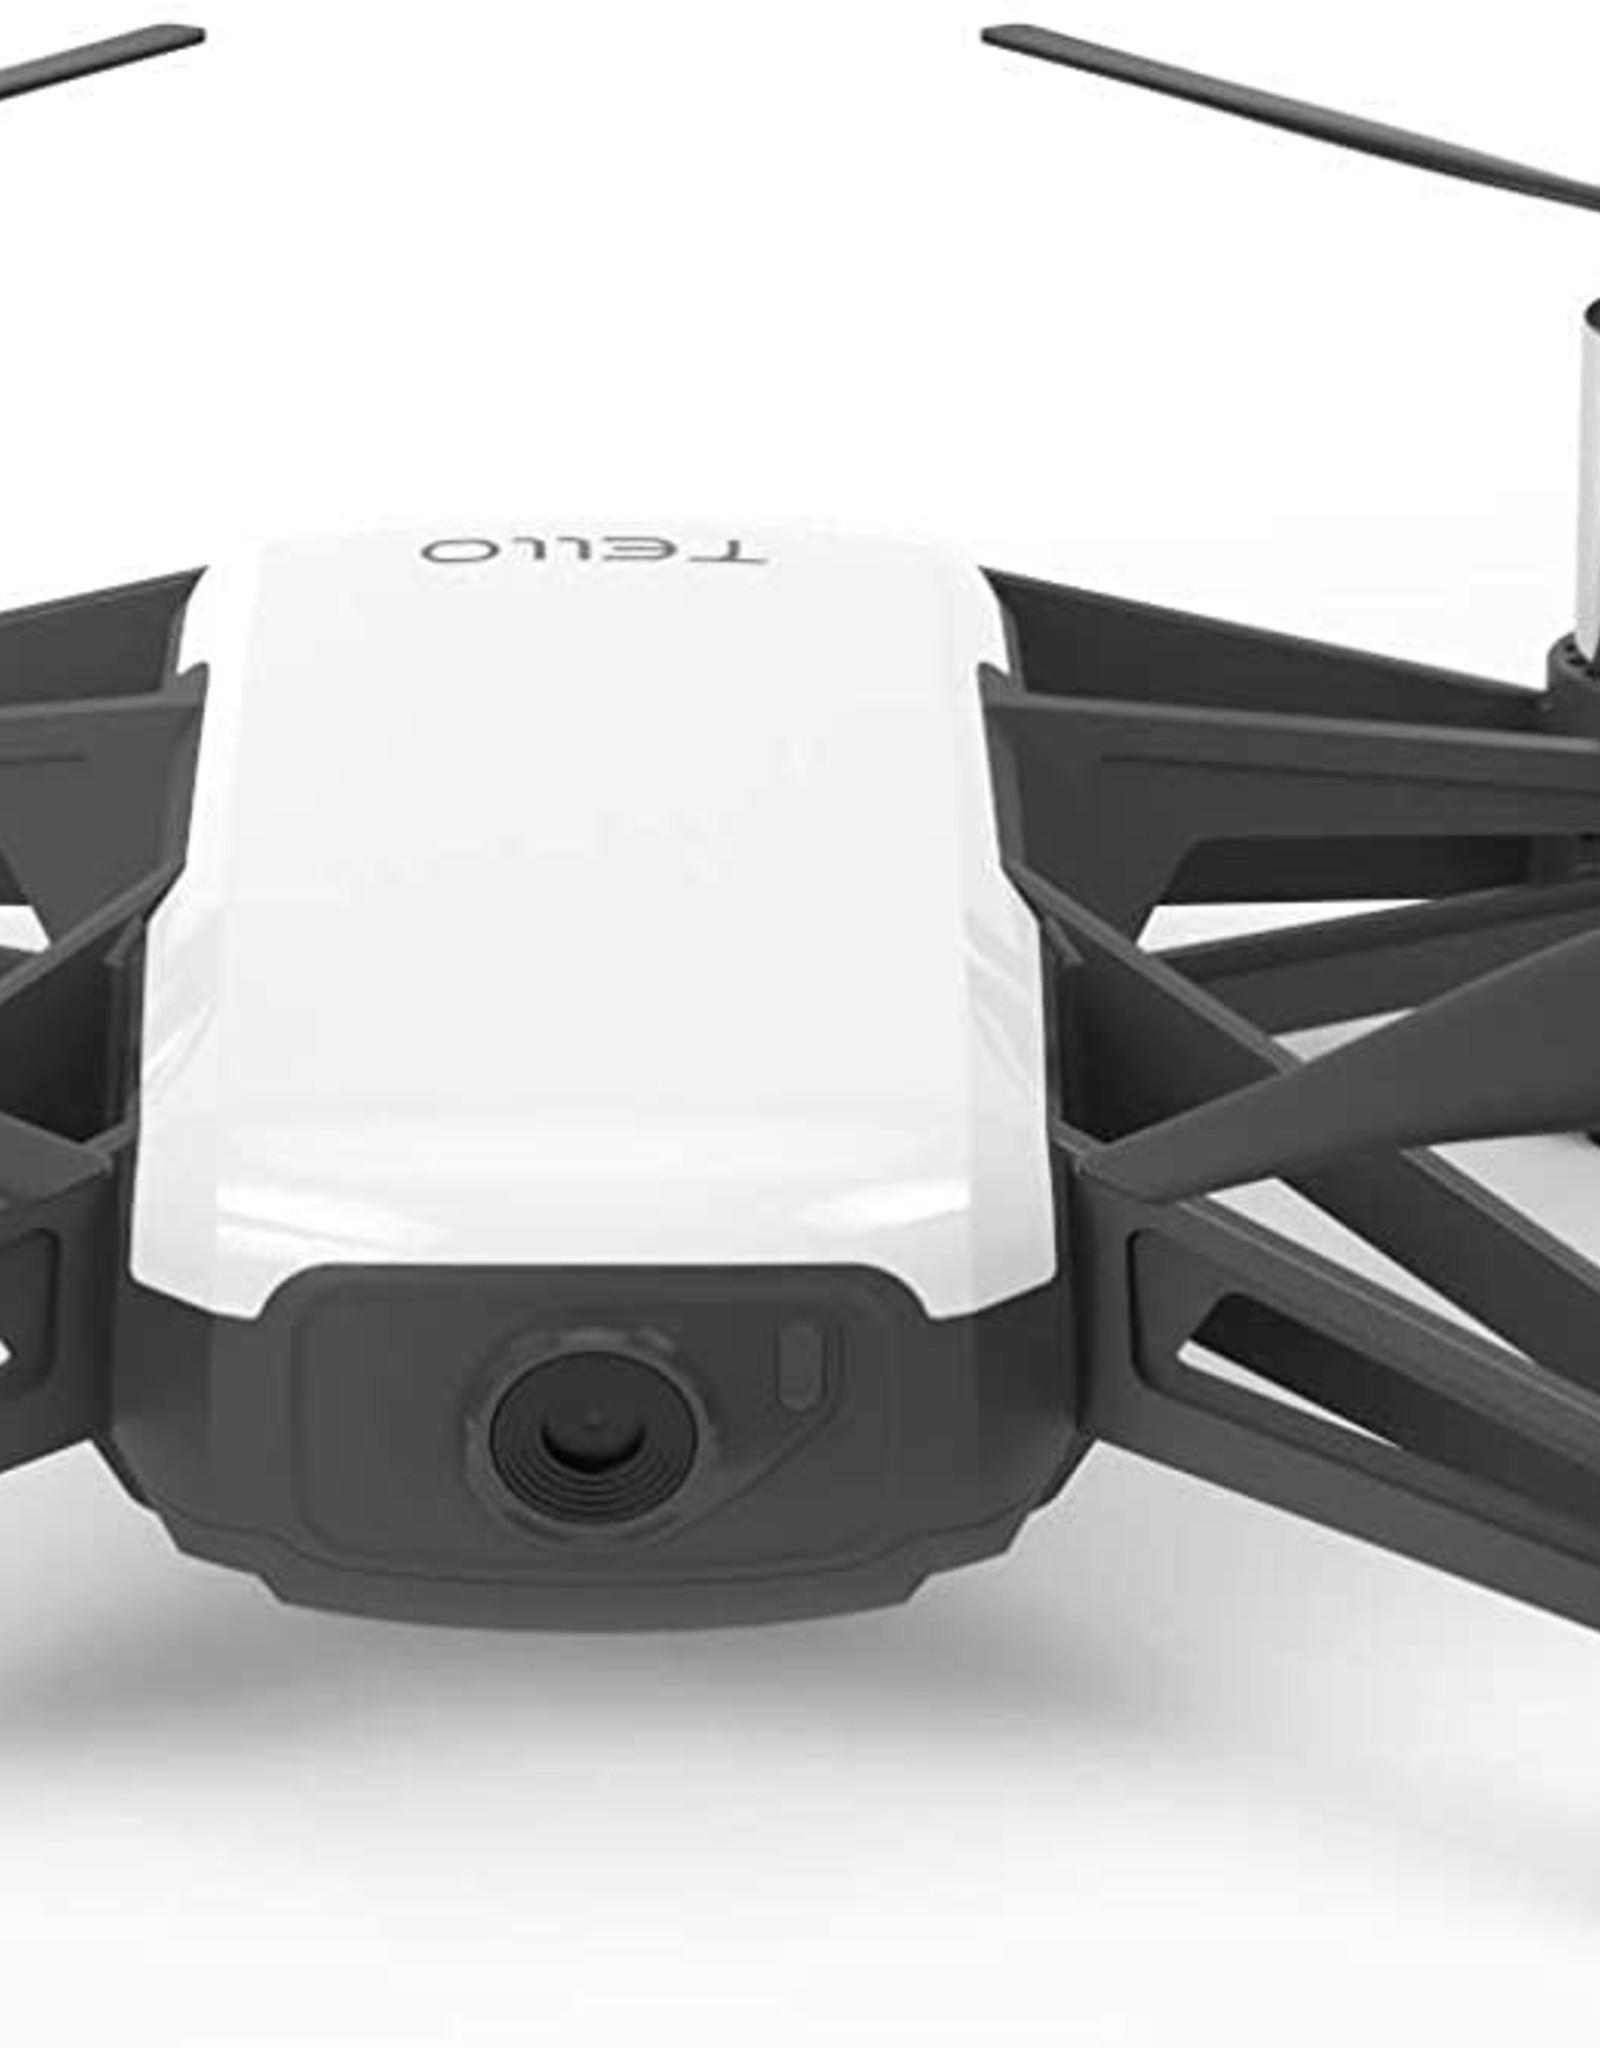 Dji DJI Ryze Tech Tello - Mini Drone Quadcopter